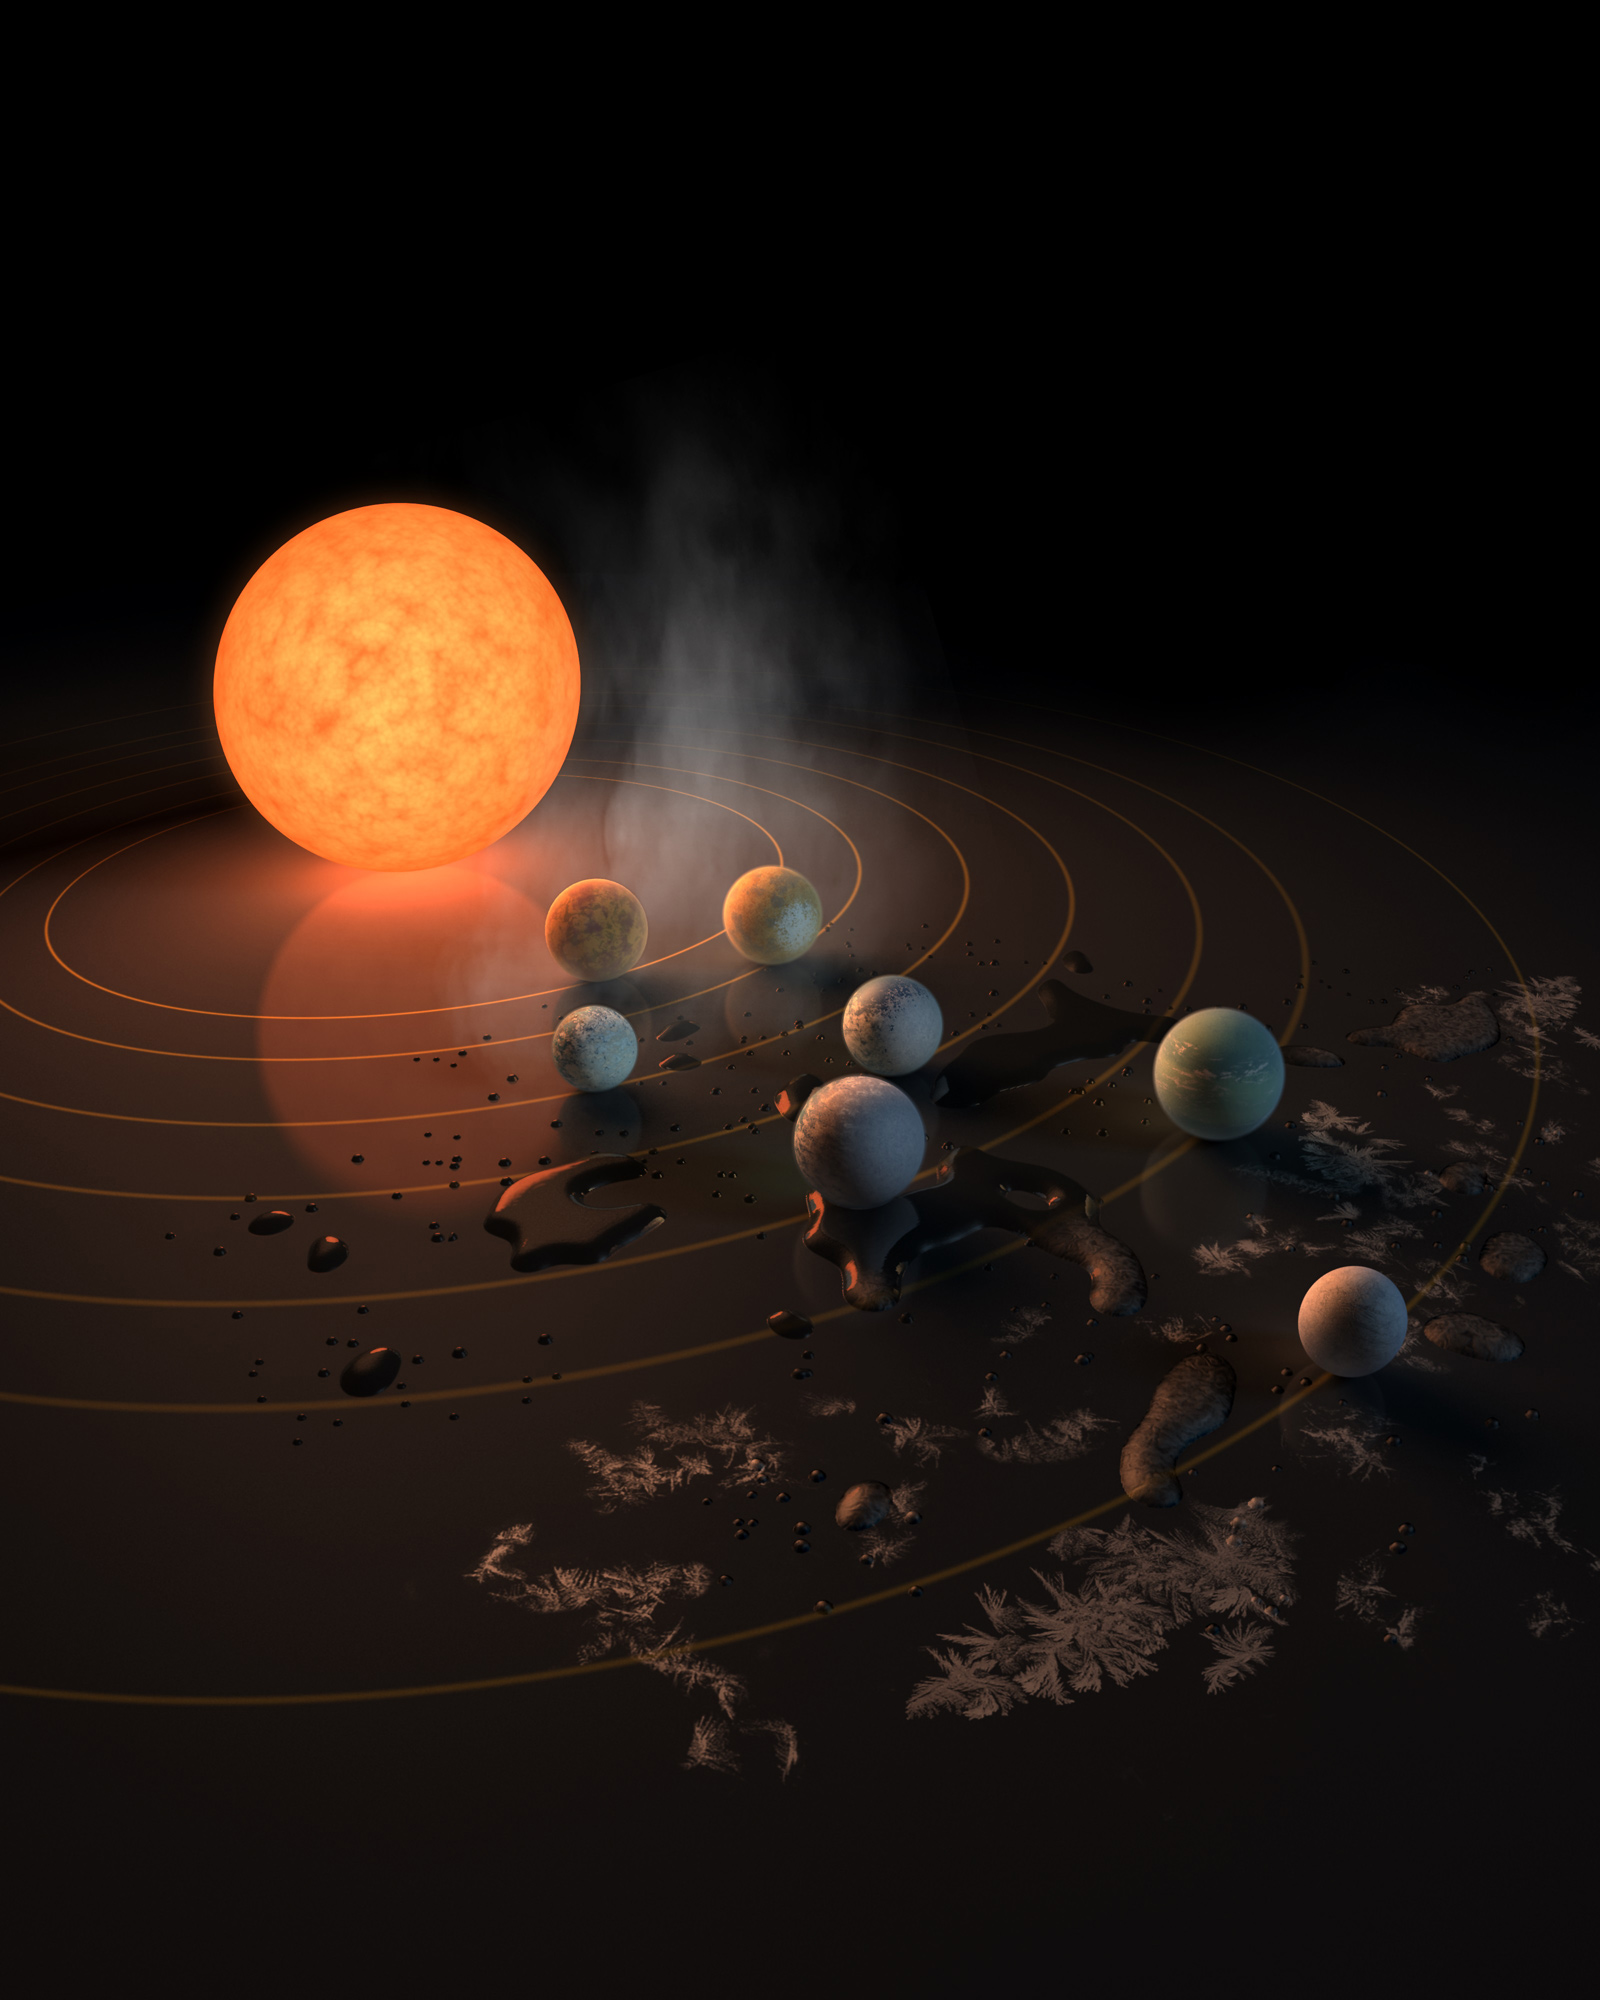 TRAPPIST-1: A system full of possibility